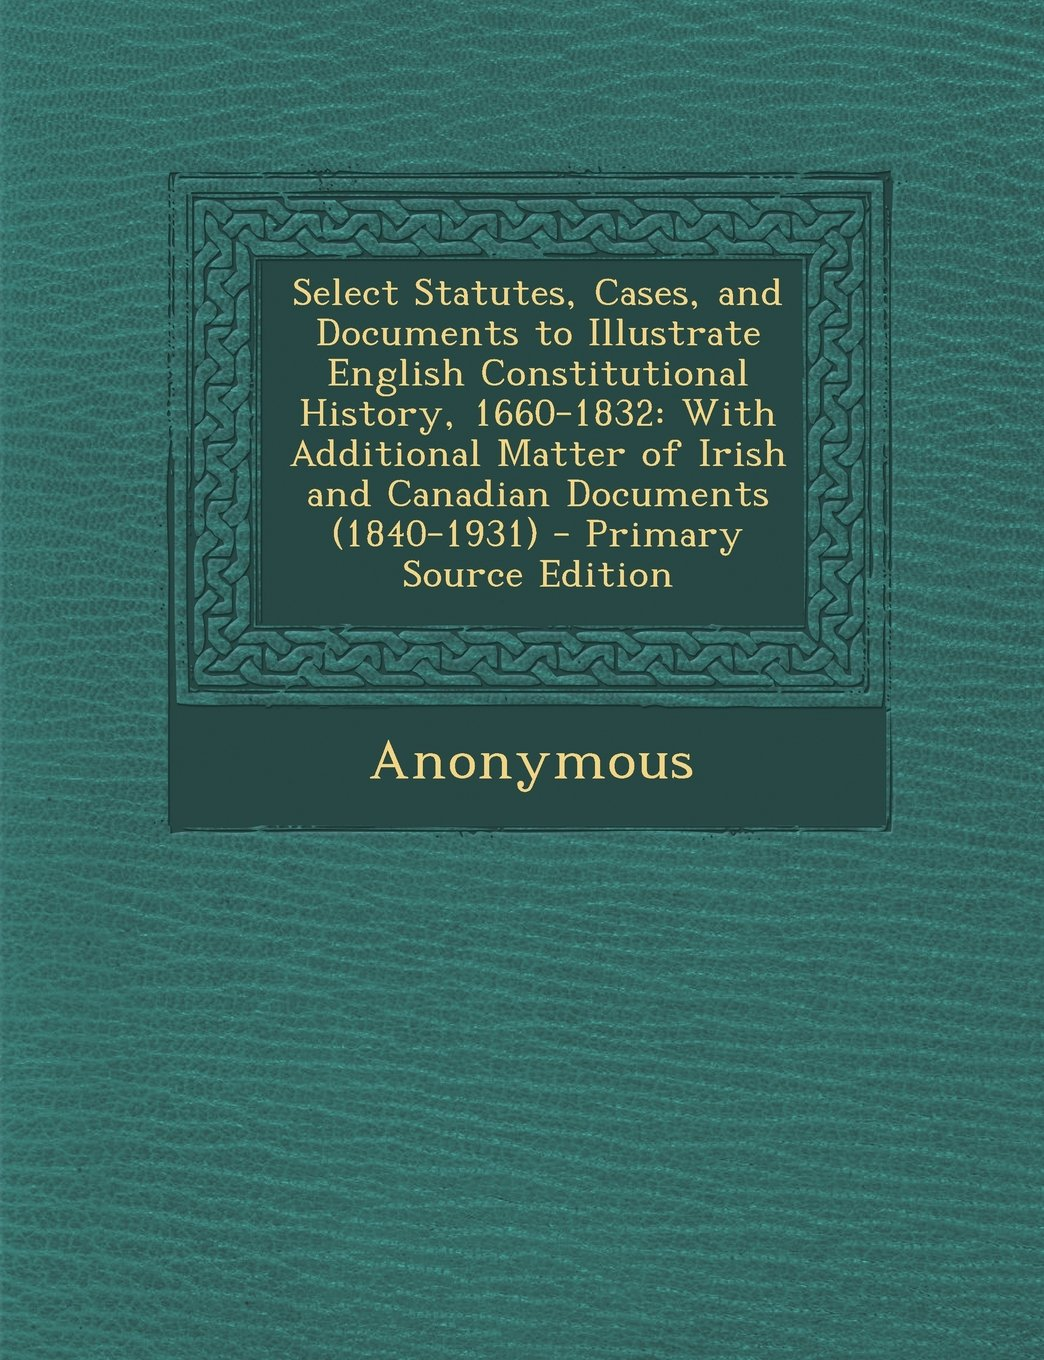 Download Select Statutes, Cases, and Documents to Illustrate English Constitutional History, 1660-1832: With Additional Matter of Irish and Canadian Documents pdf